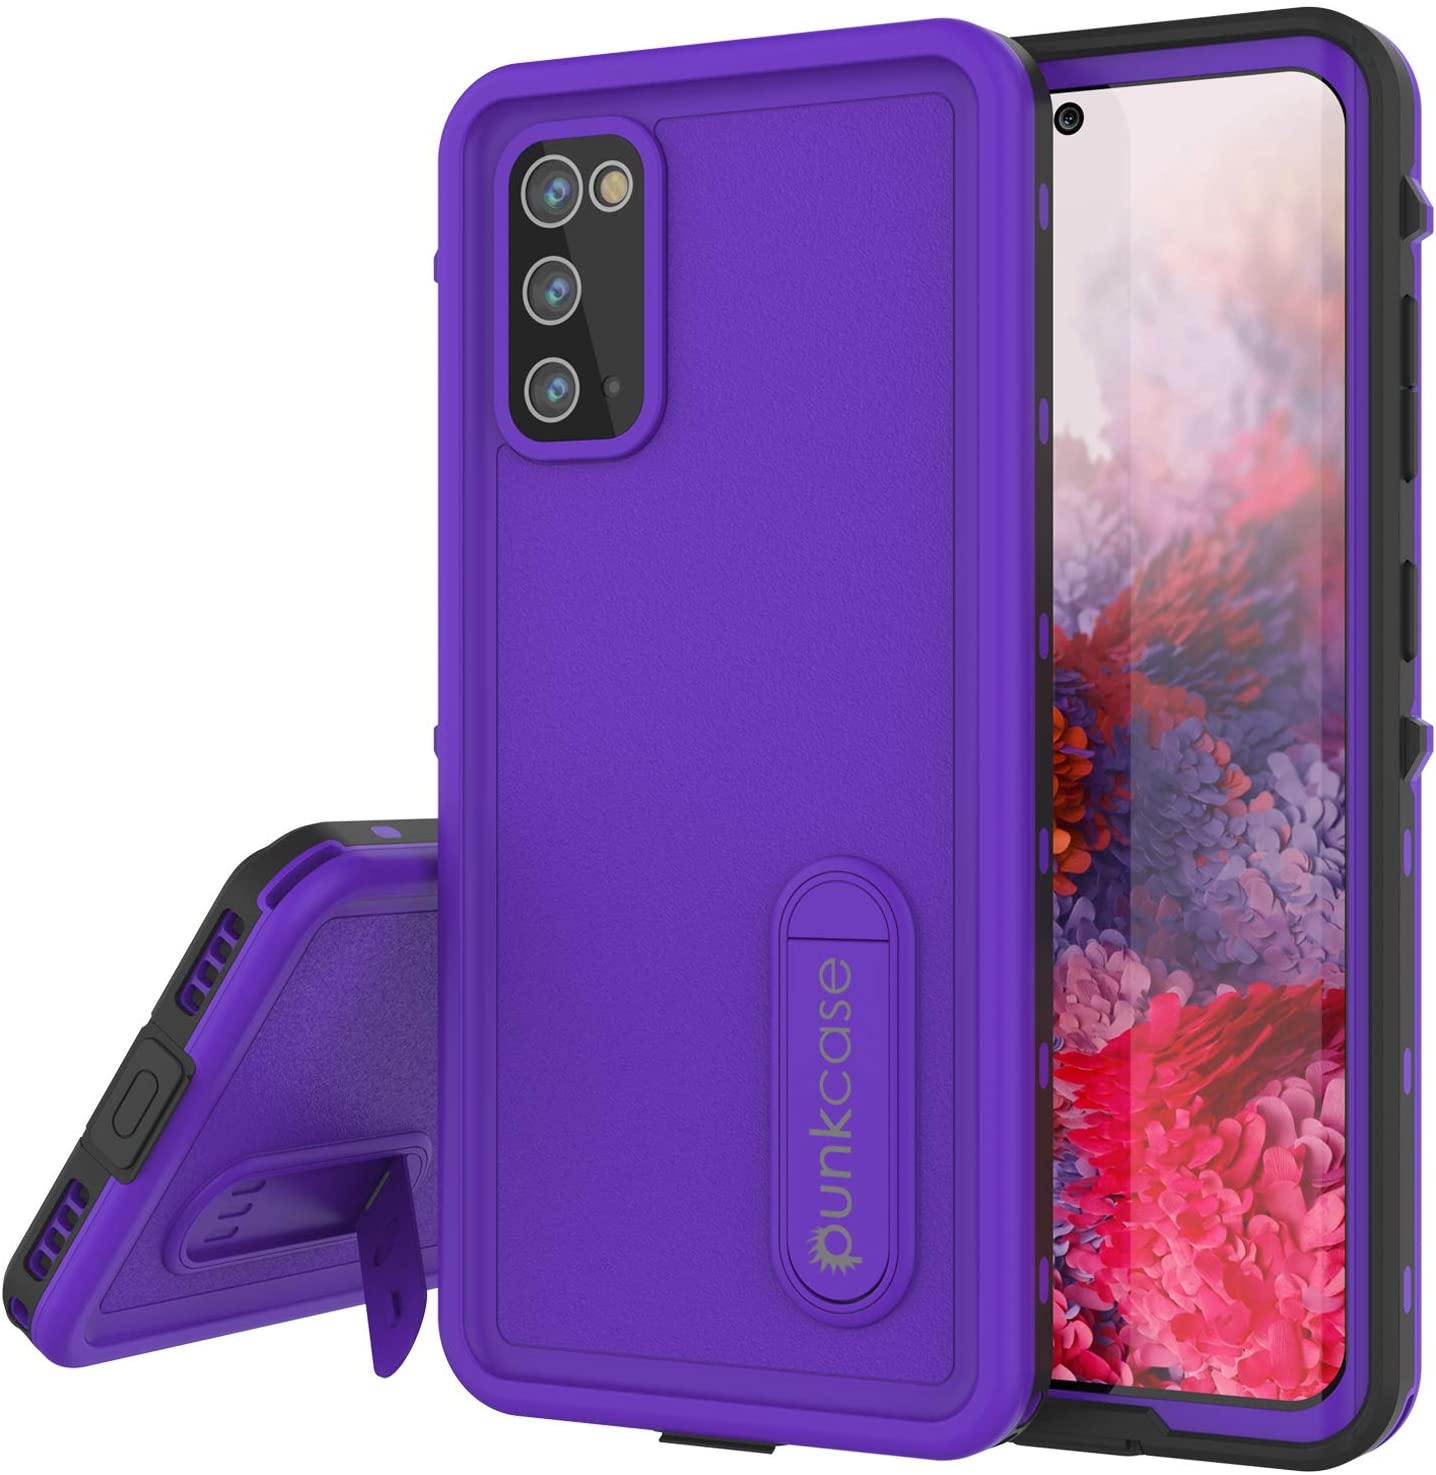 Galaxy S20 Waterproof Case, Punkcase [KickStud Series] Armor Cover [Purple]